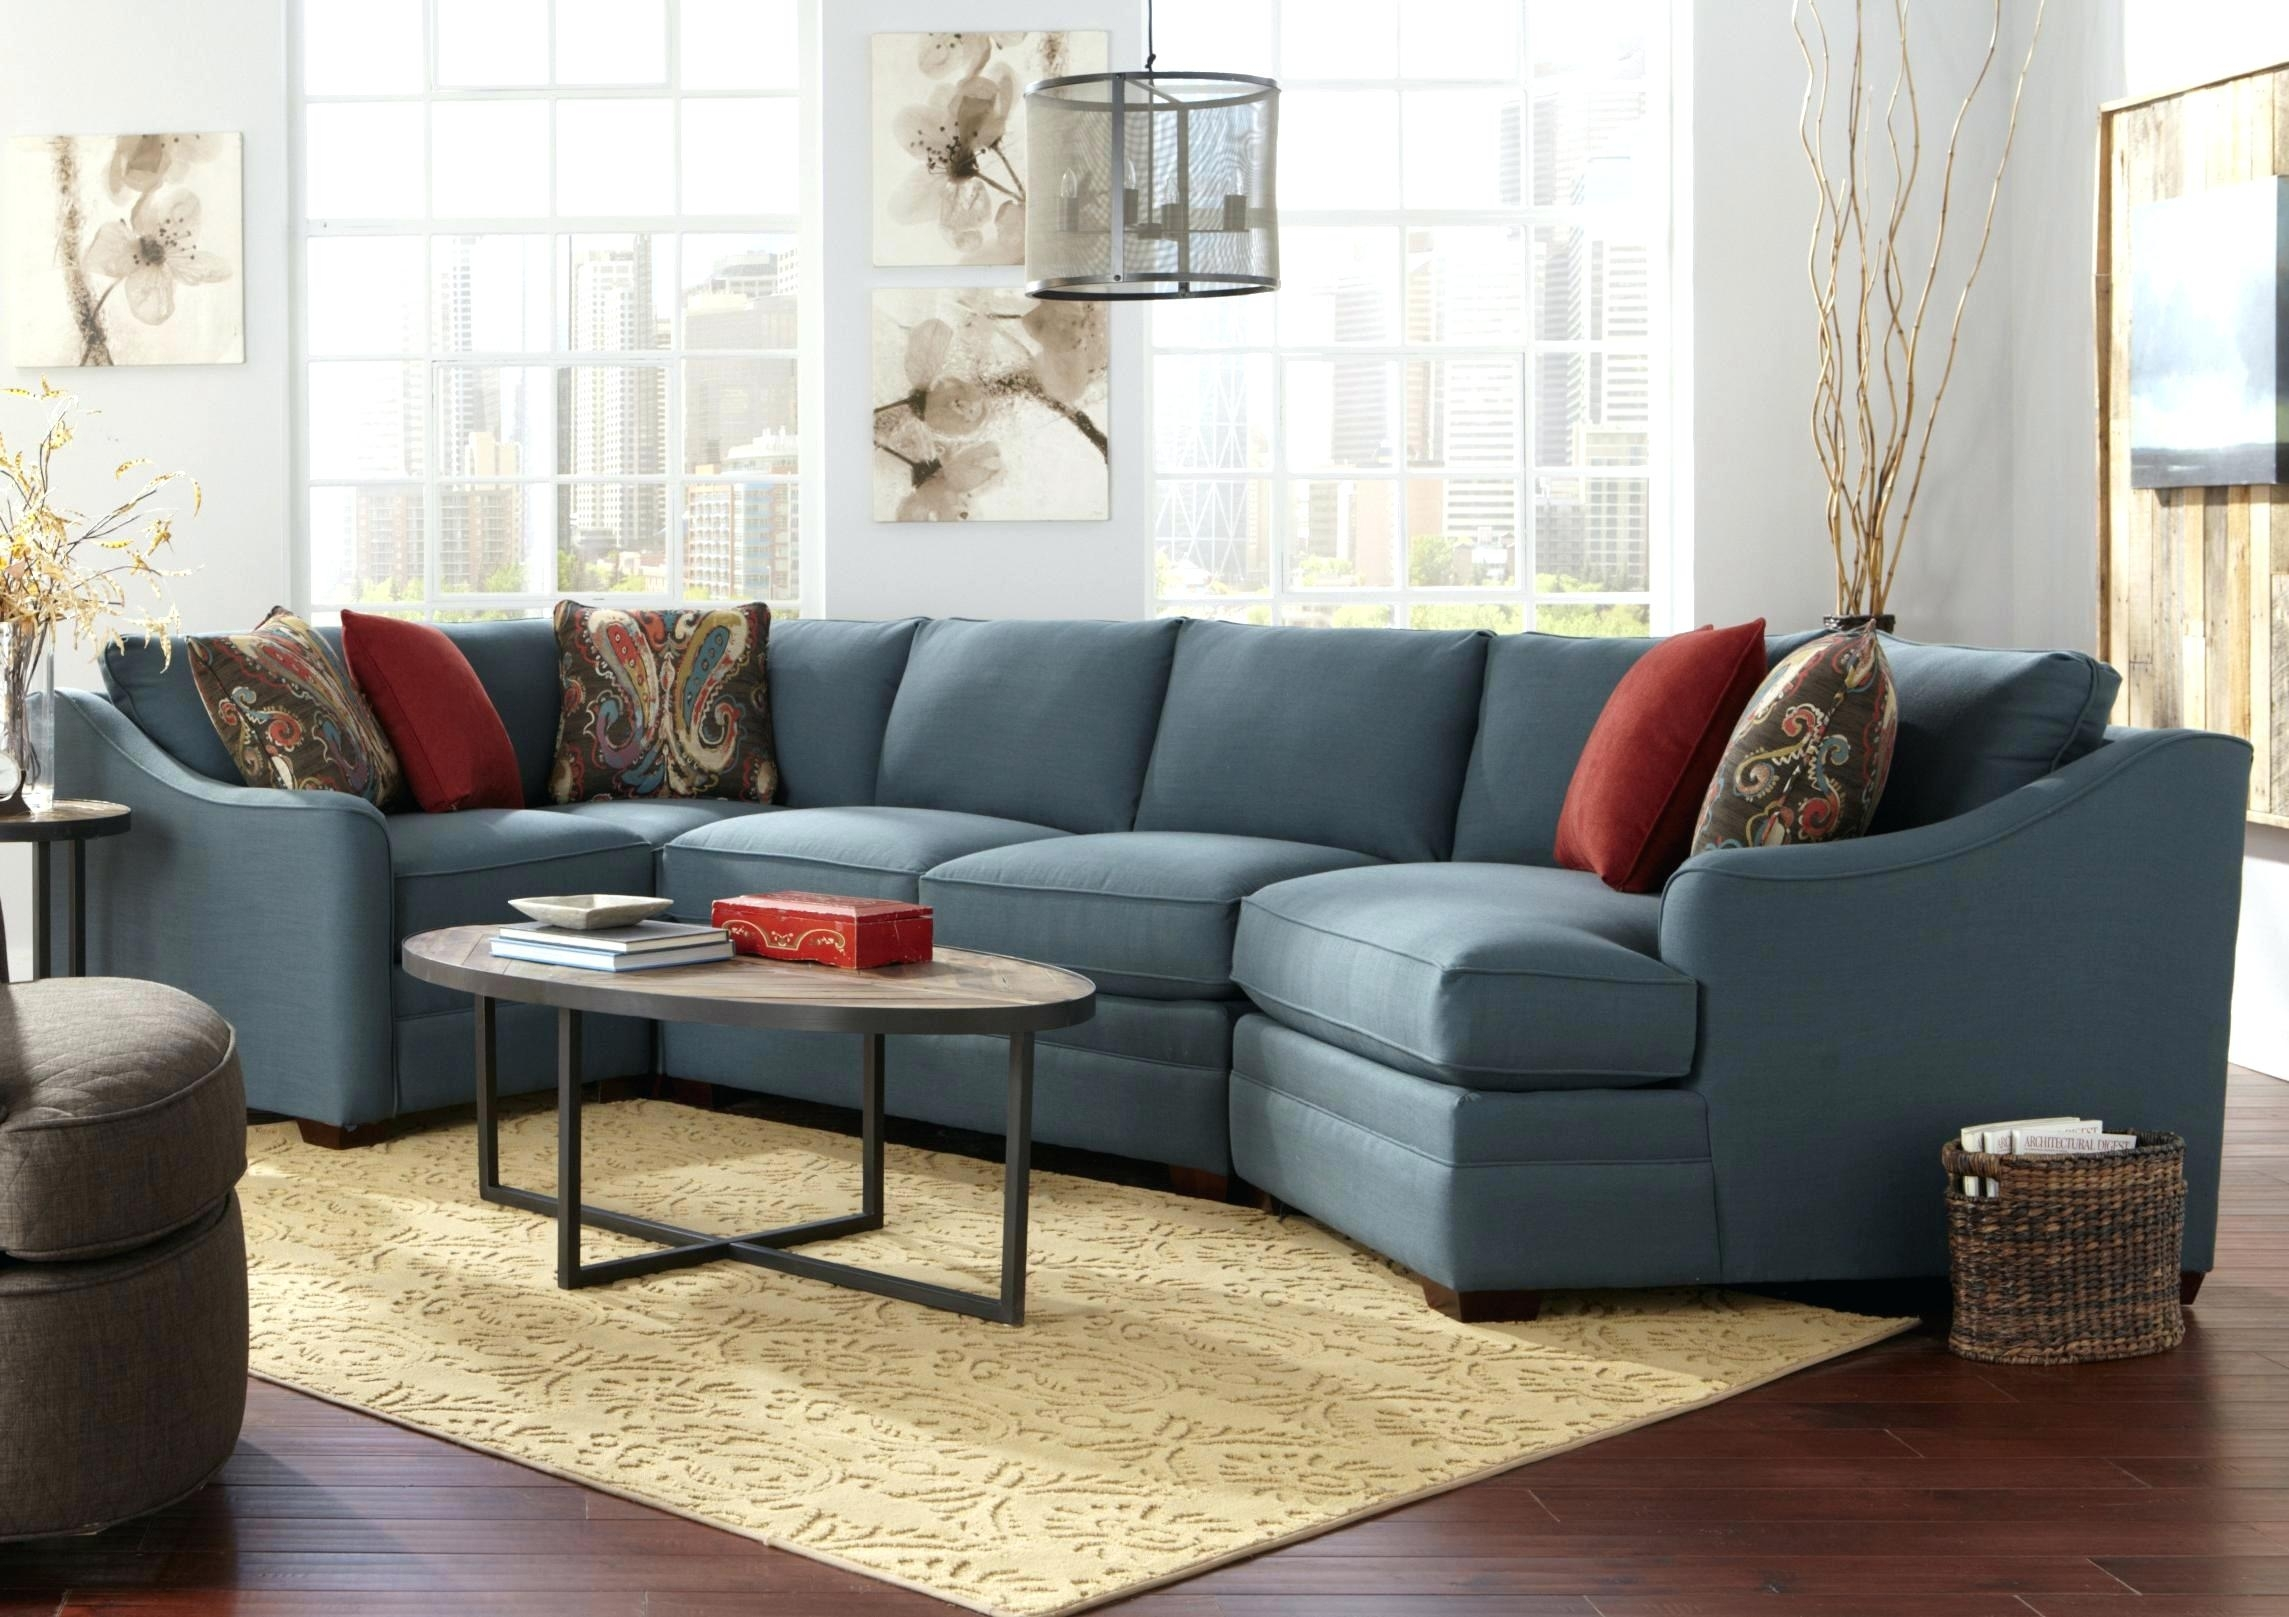 Idea Sectional Couch With Cuddler For Custom Collection Four Piece B Within Sectional Sofas With Cuddler Chaise (View 4 of 10)